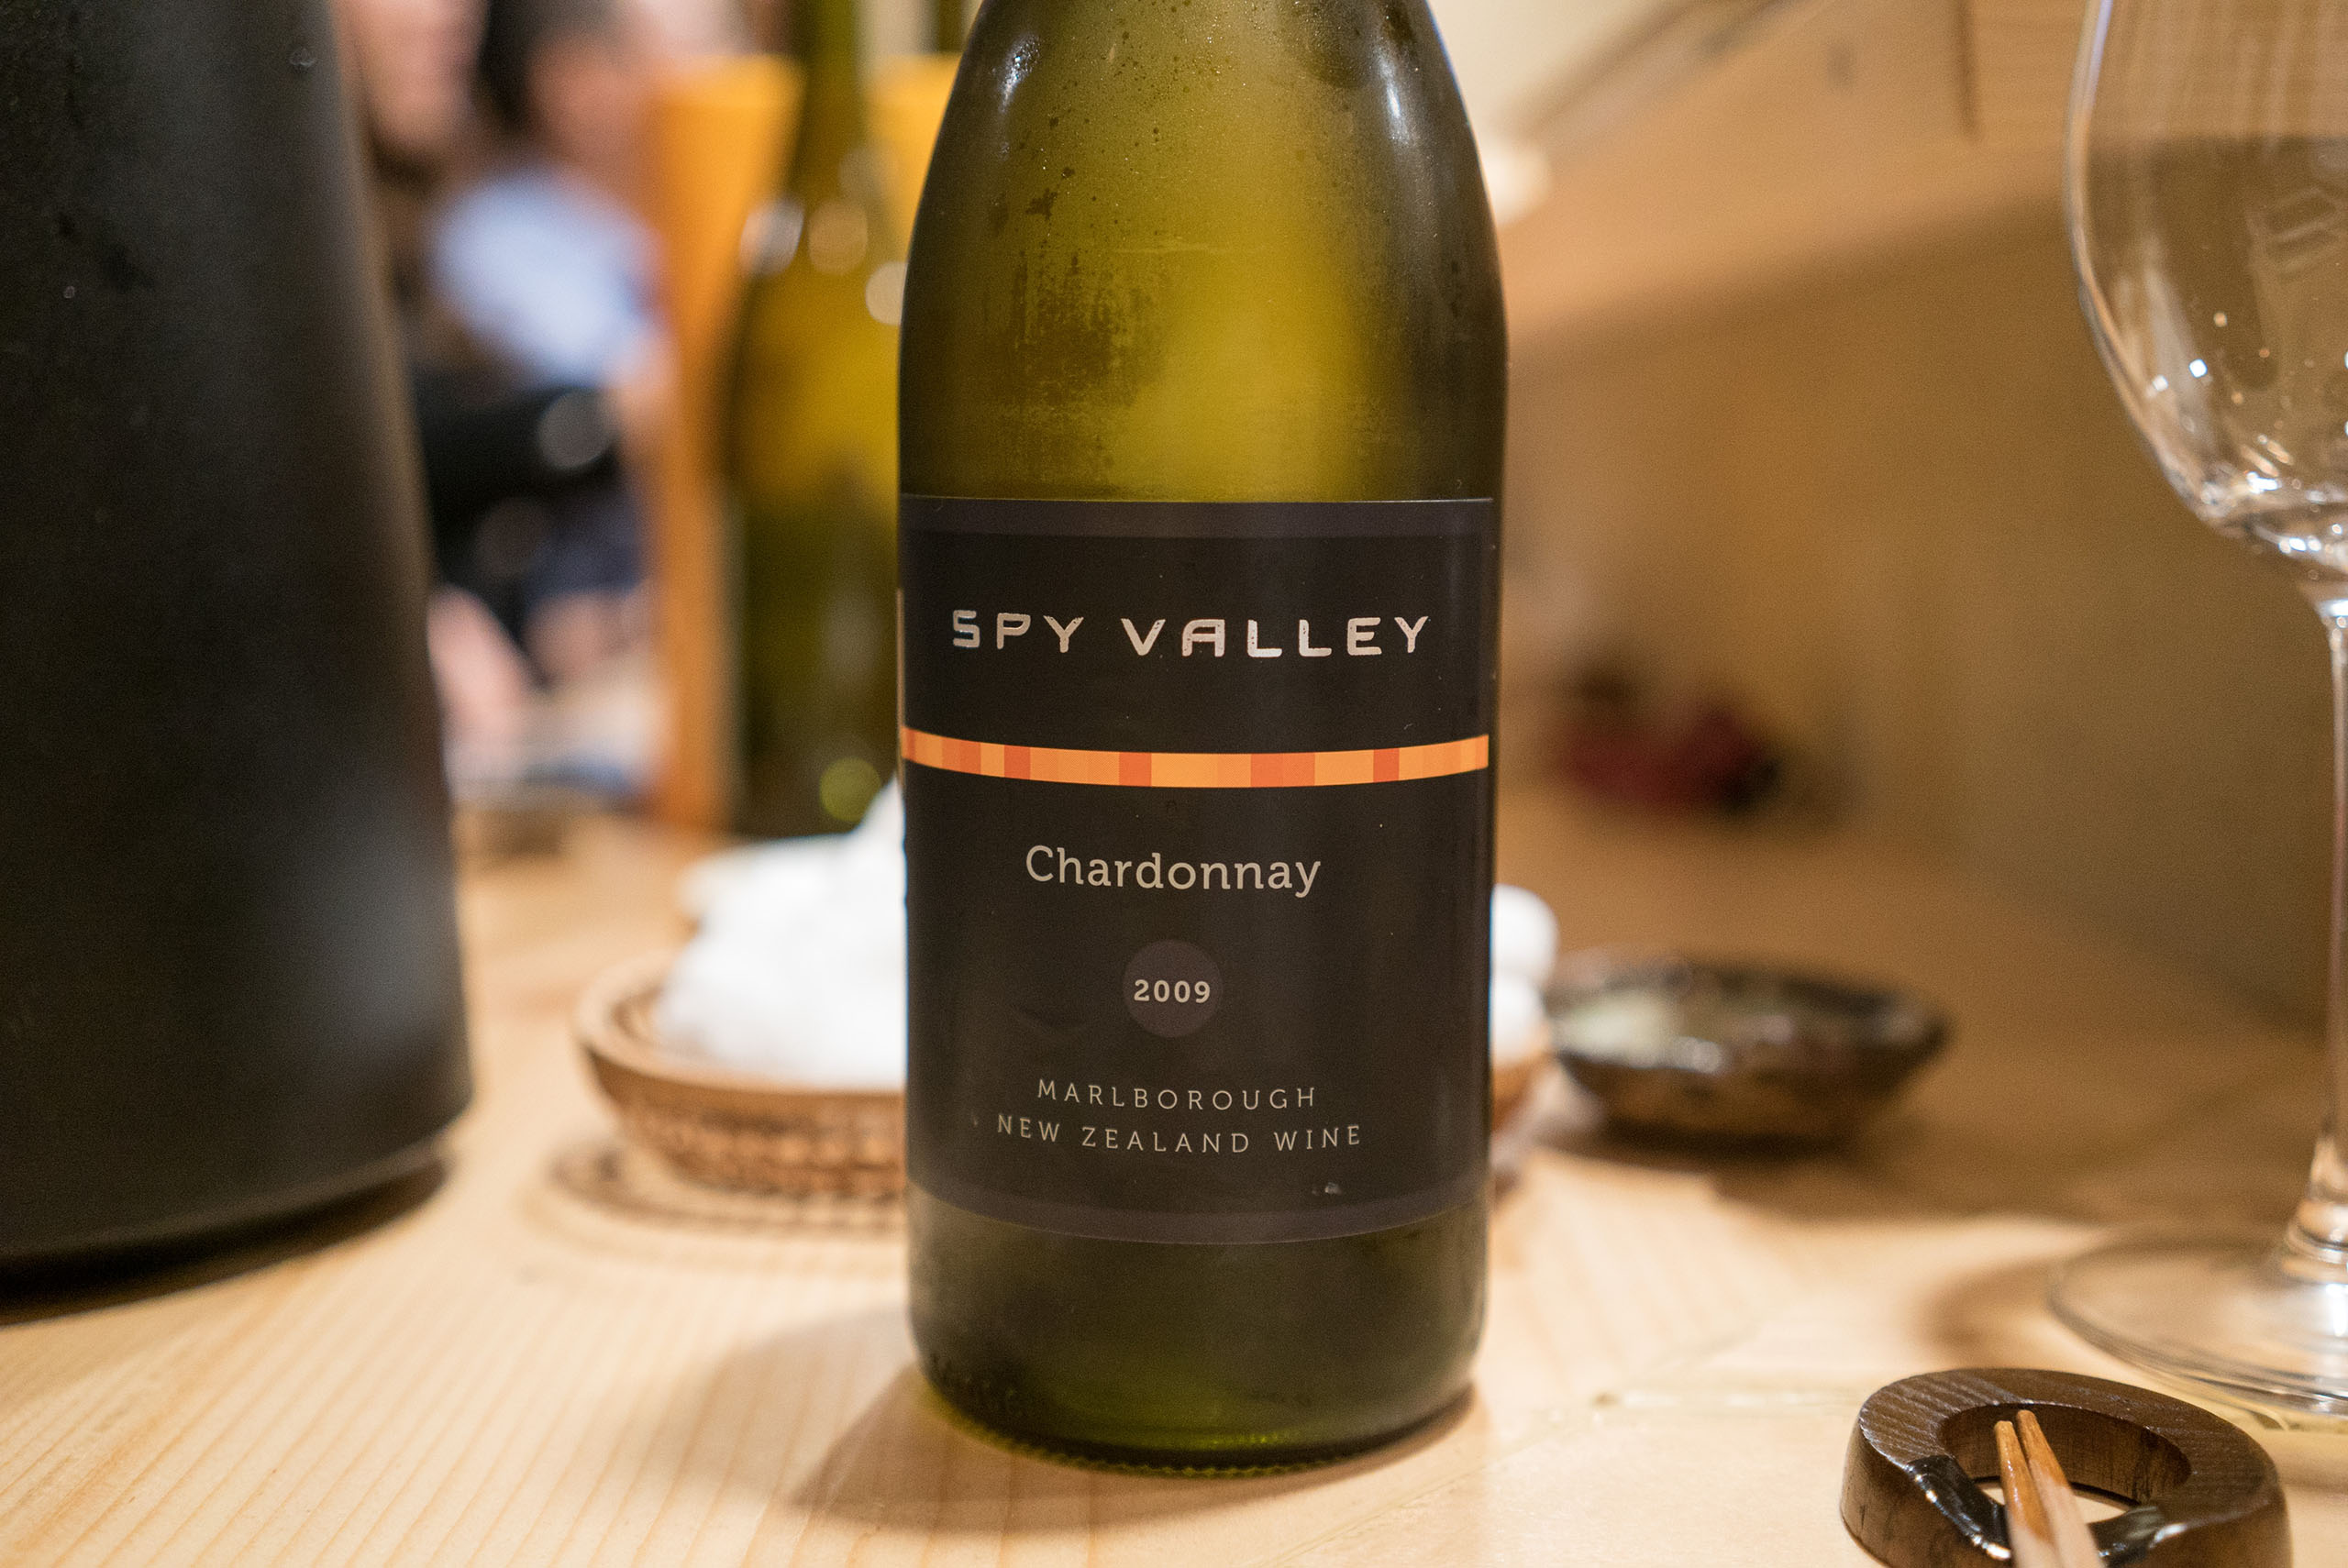 Spy Valley Chardonnay 2009